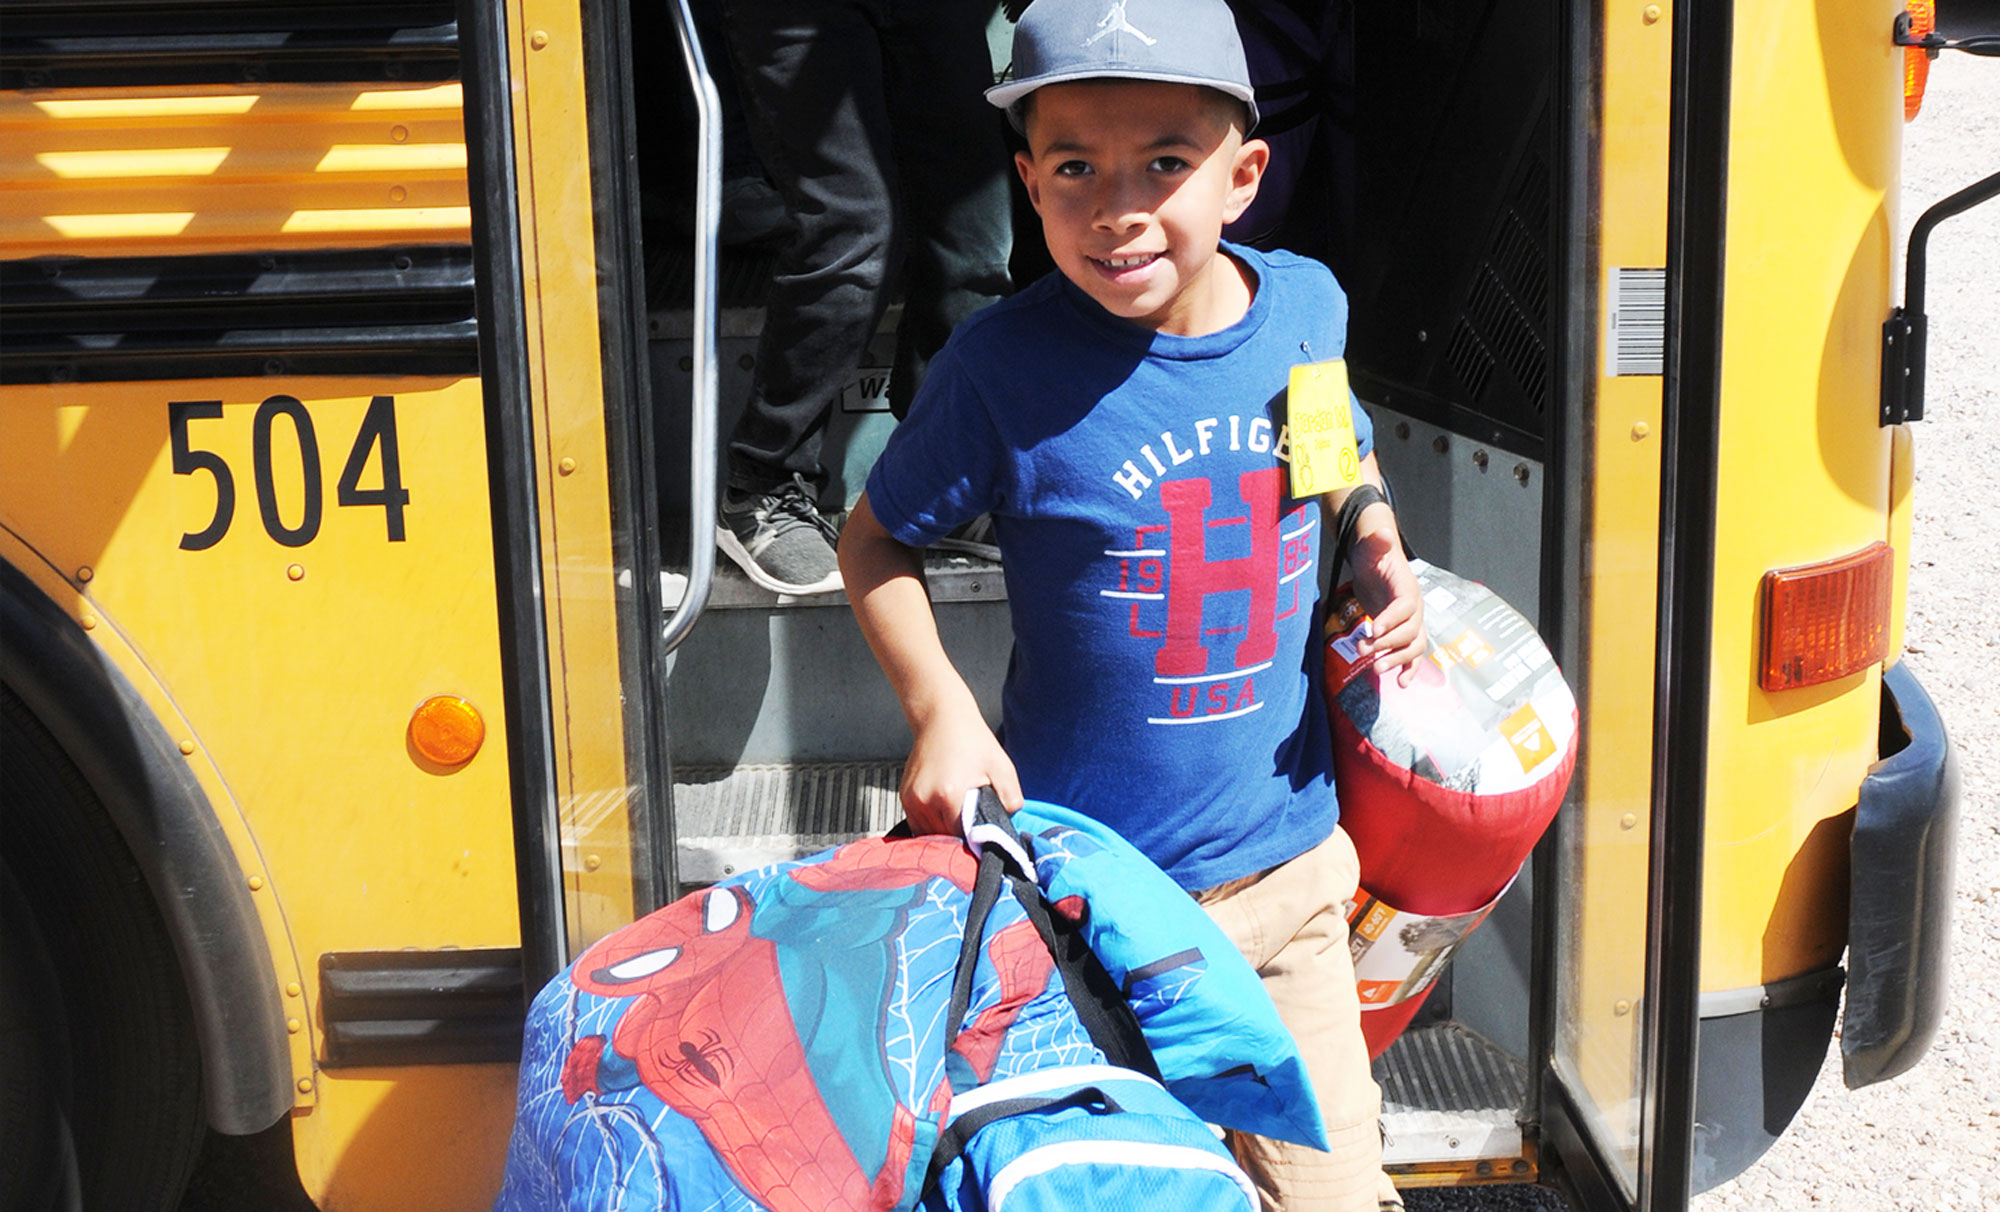 Camp Cooper overnights are unforgettable - picture of student arriving with overnight gear.